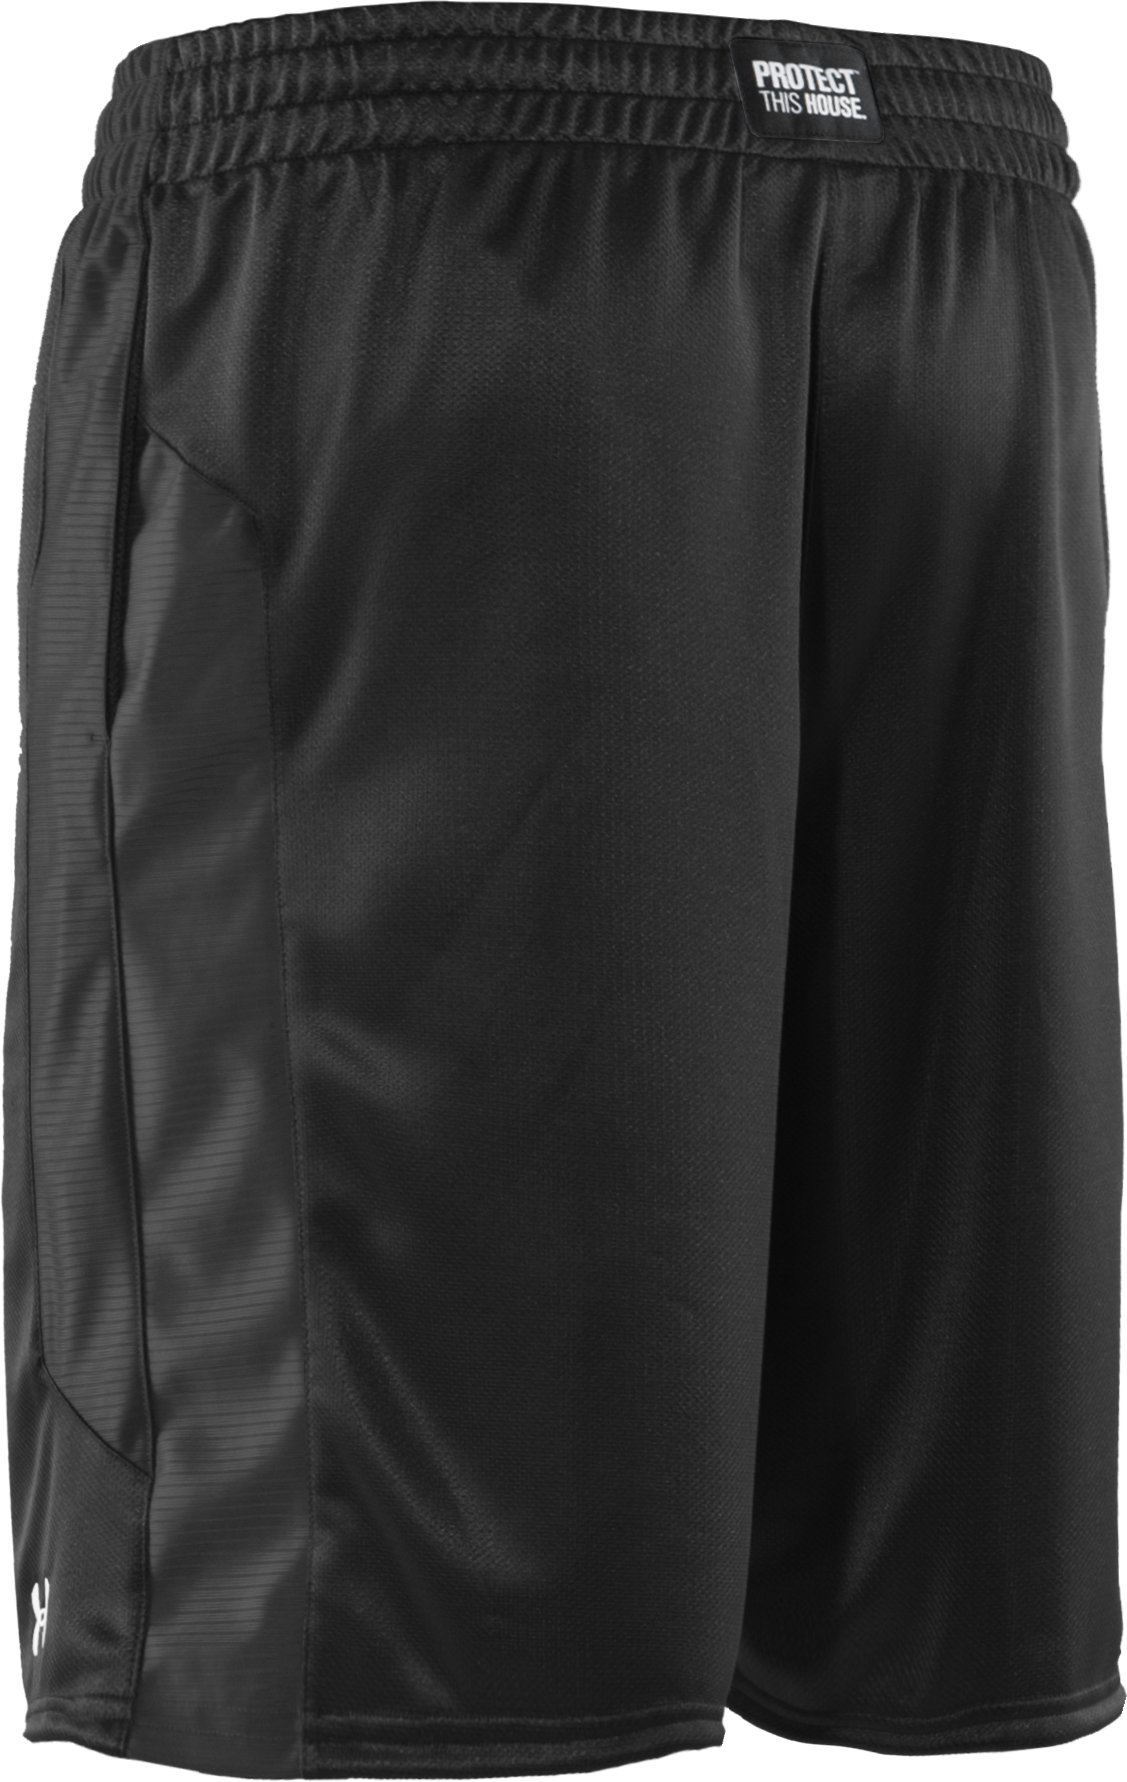 "Men's UA Never Lose 10"" Basketball Shorts, Black , undefined"